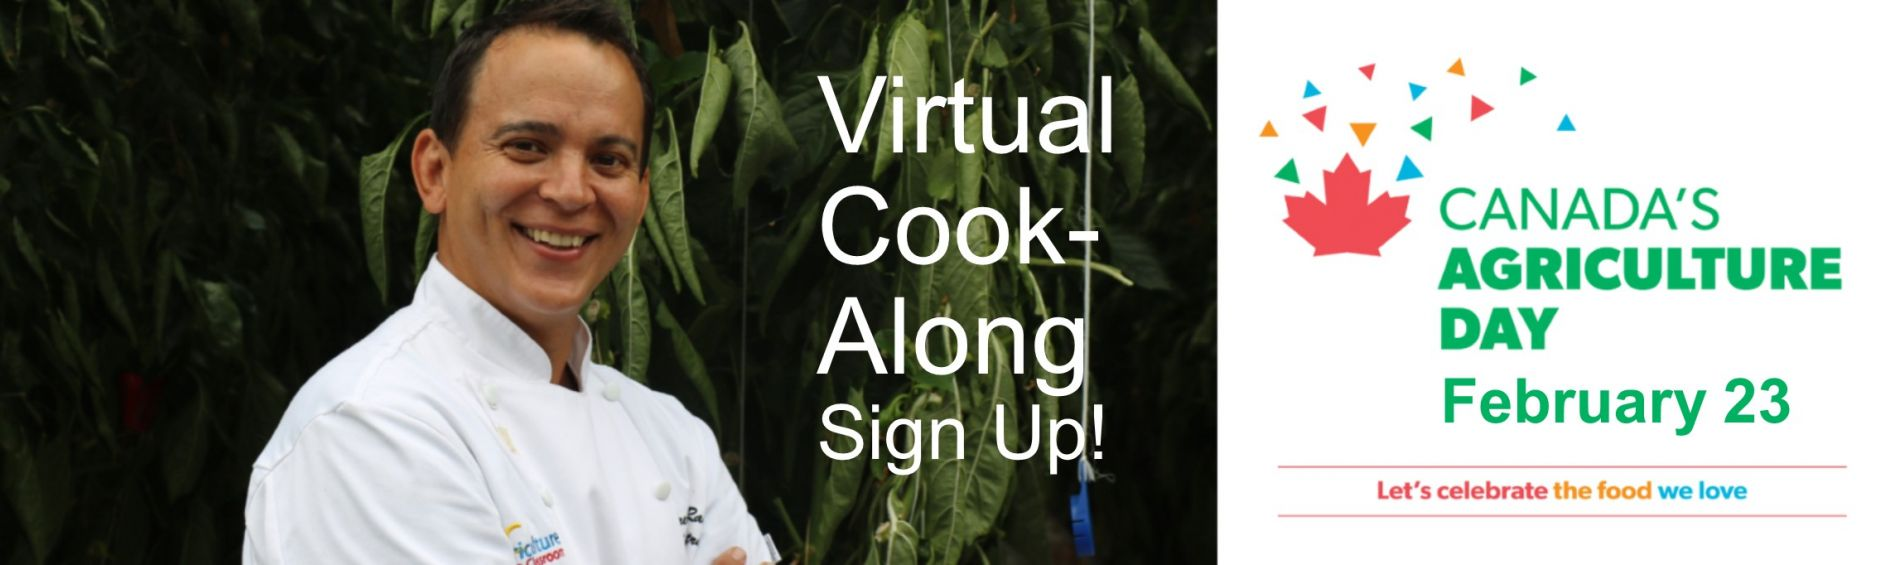 Cook-Along with Celebrity Chef Randle